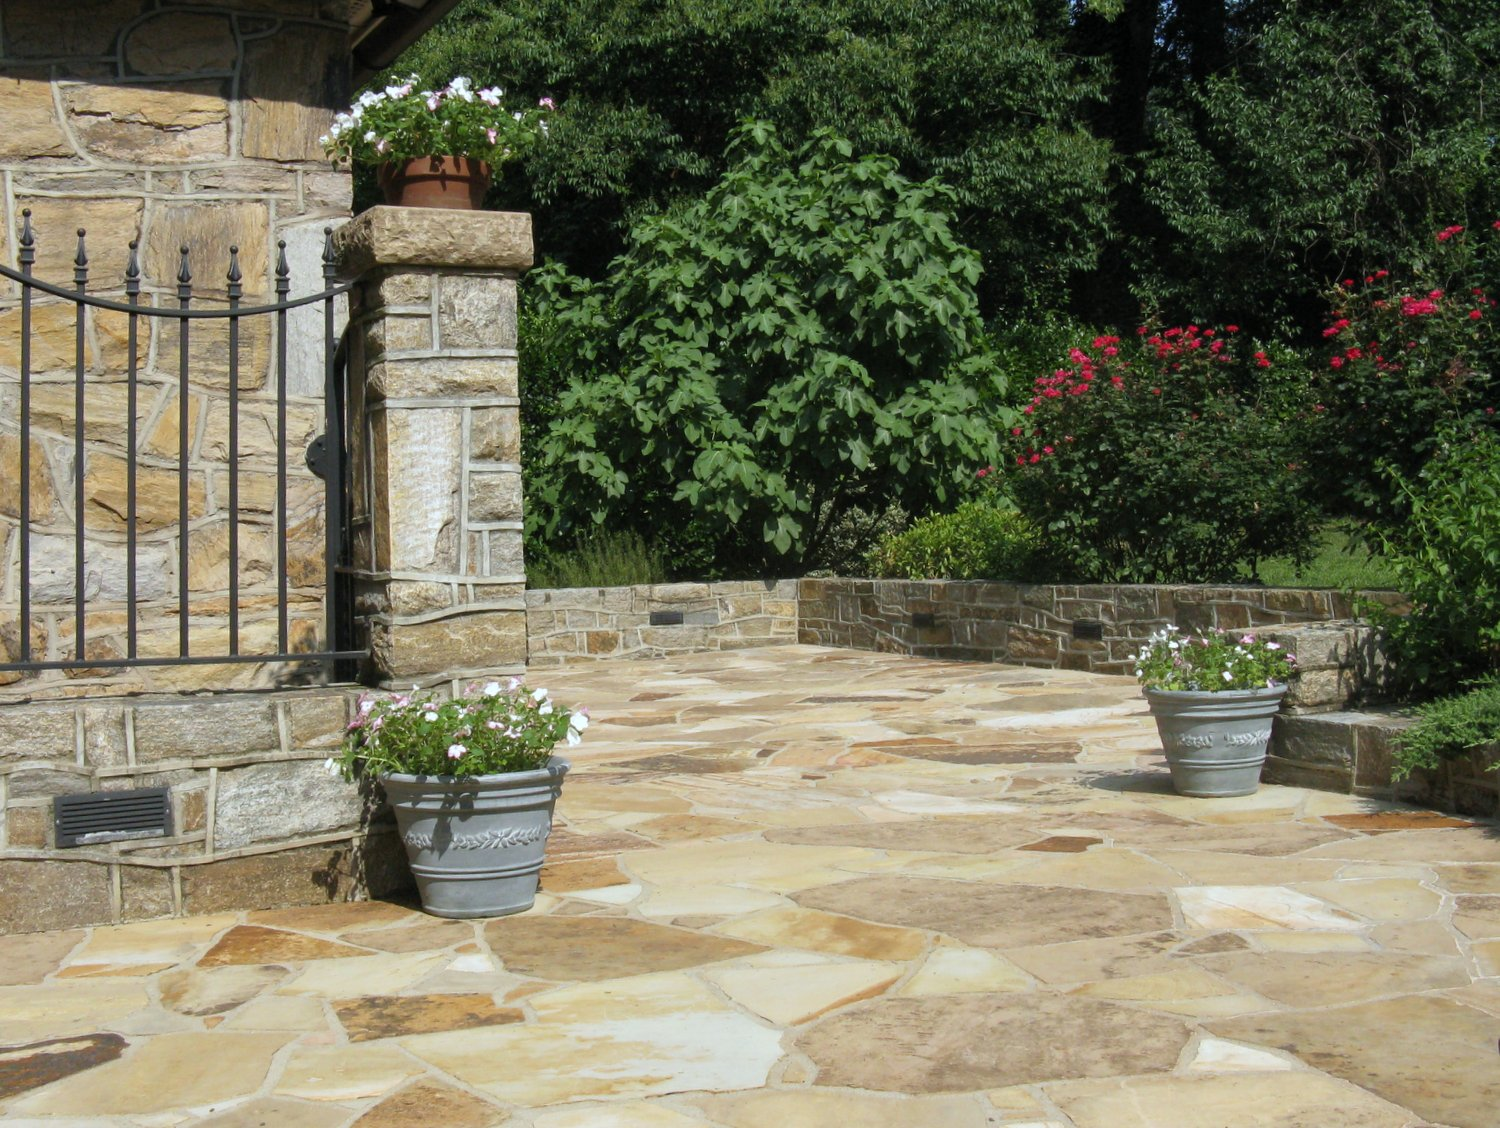 Built in 2001 and photographed in 2010, this stone patio still looks great today.